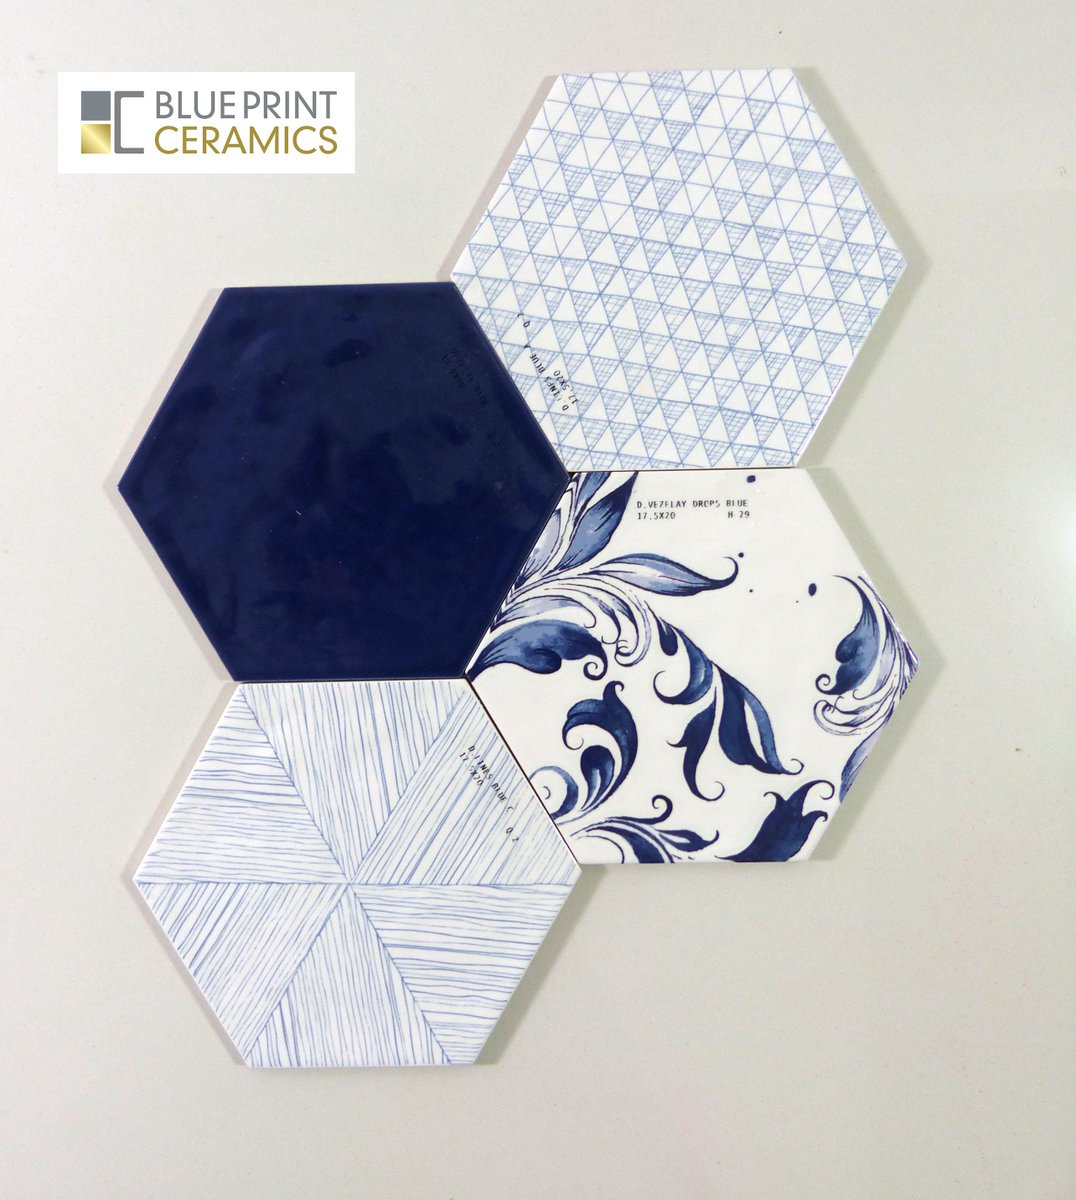 Blueprint ceramics blueprintceram twitter 0 replies 0 retweets 0 likes malvernweather Choice Image